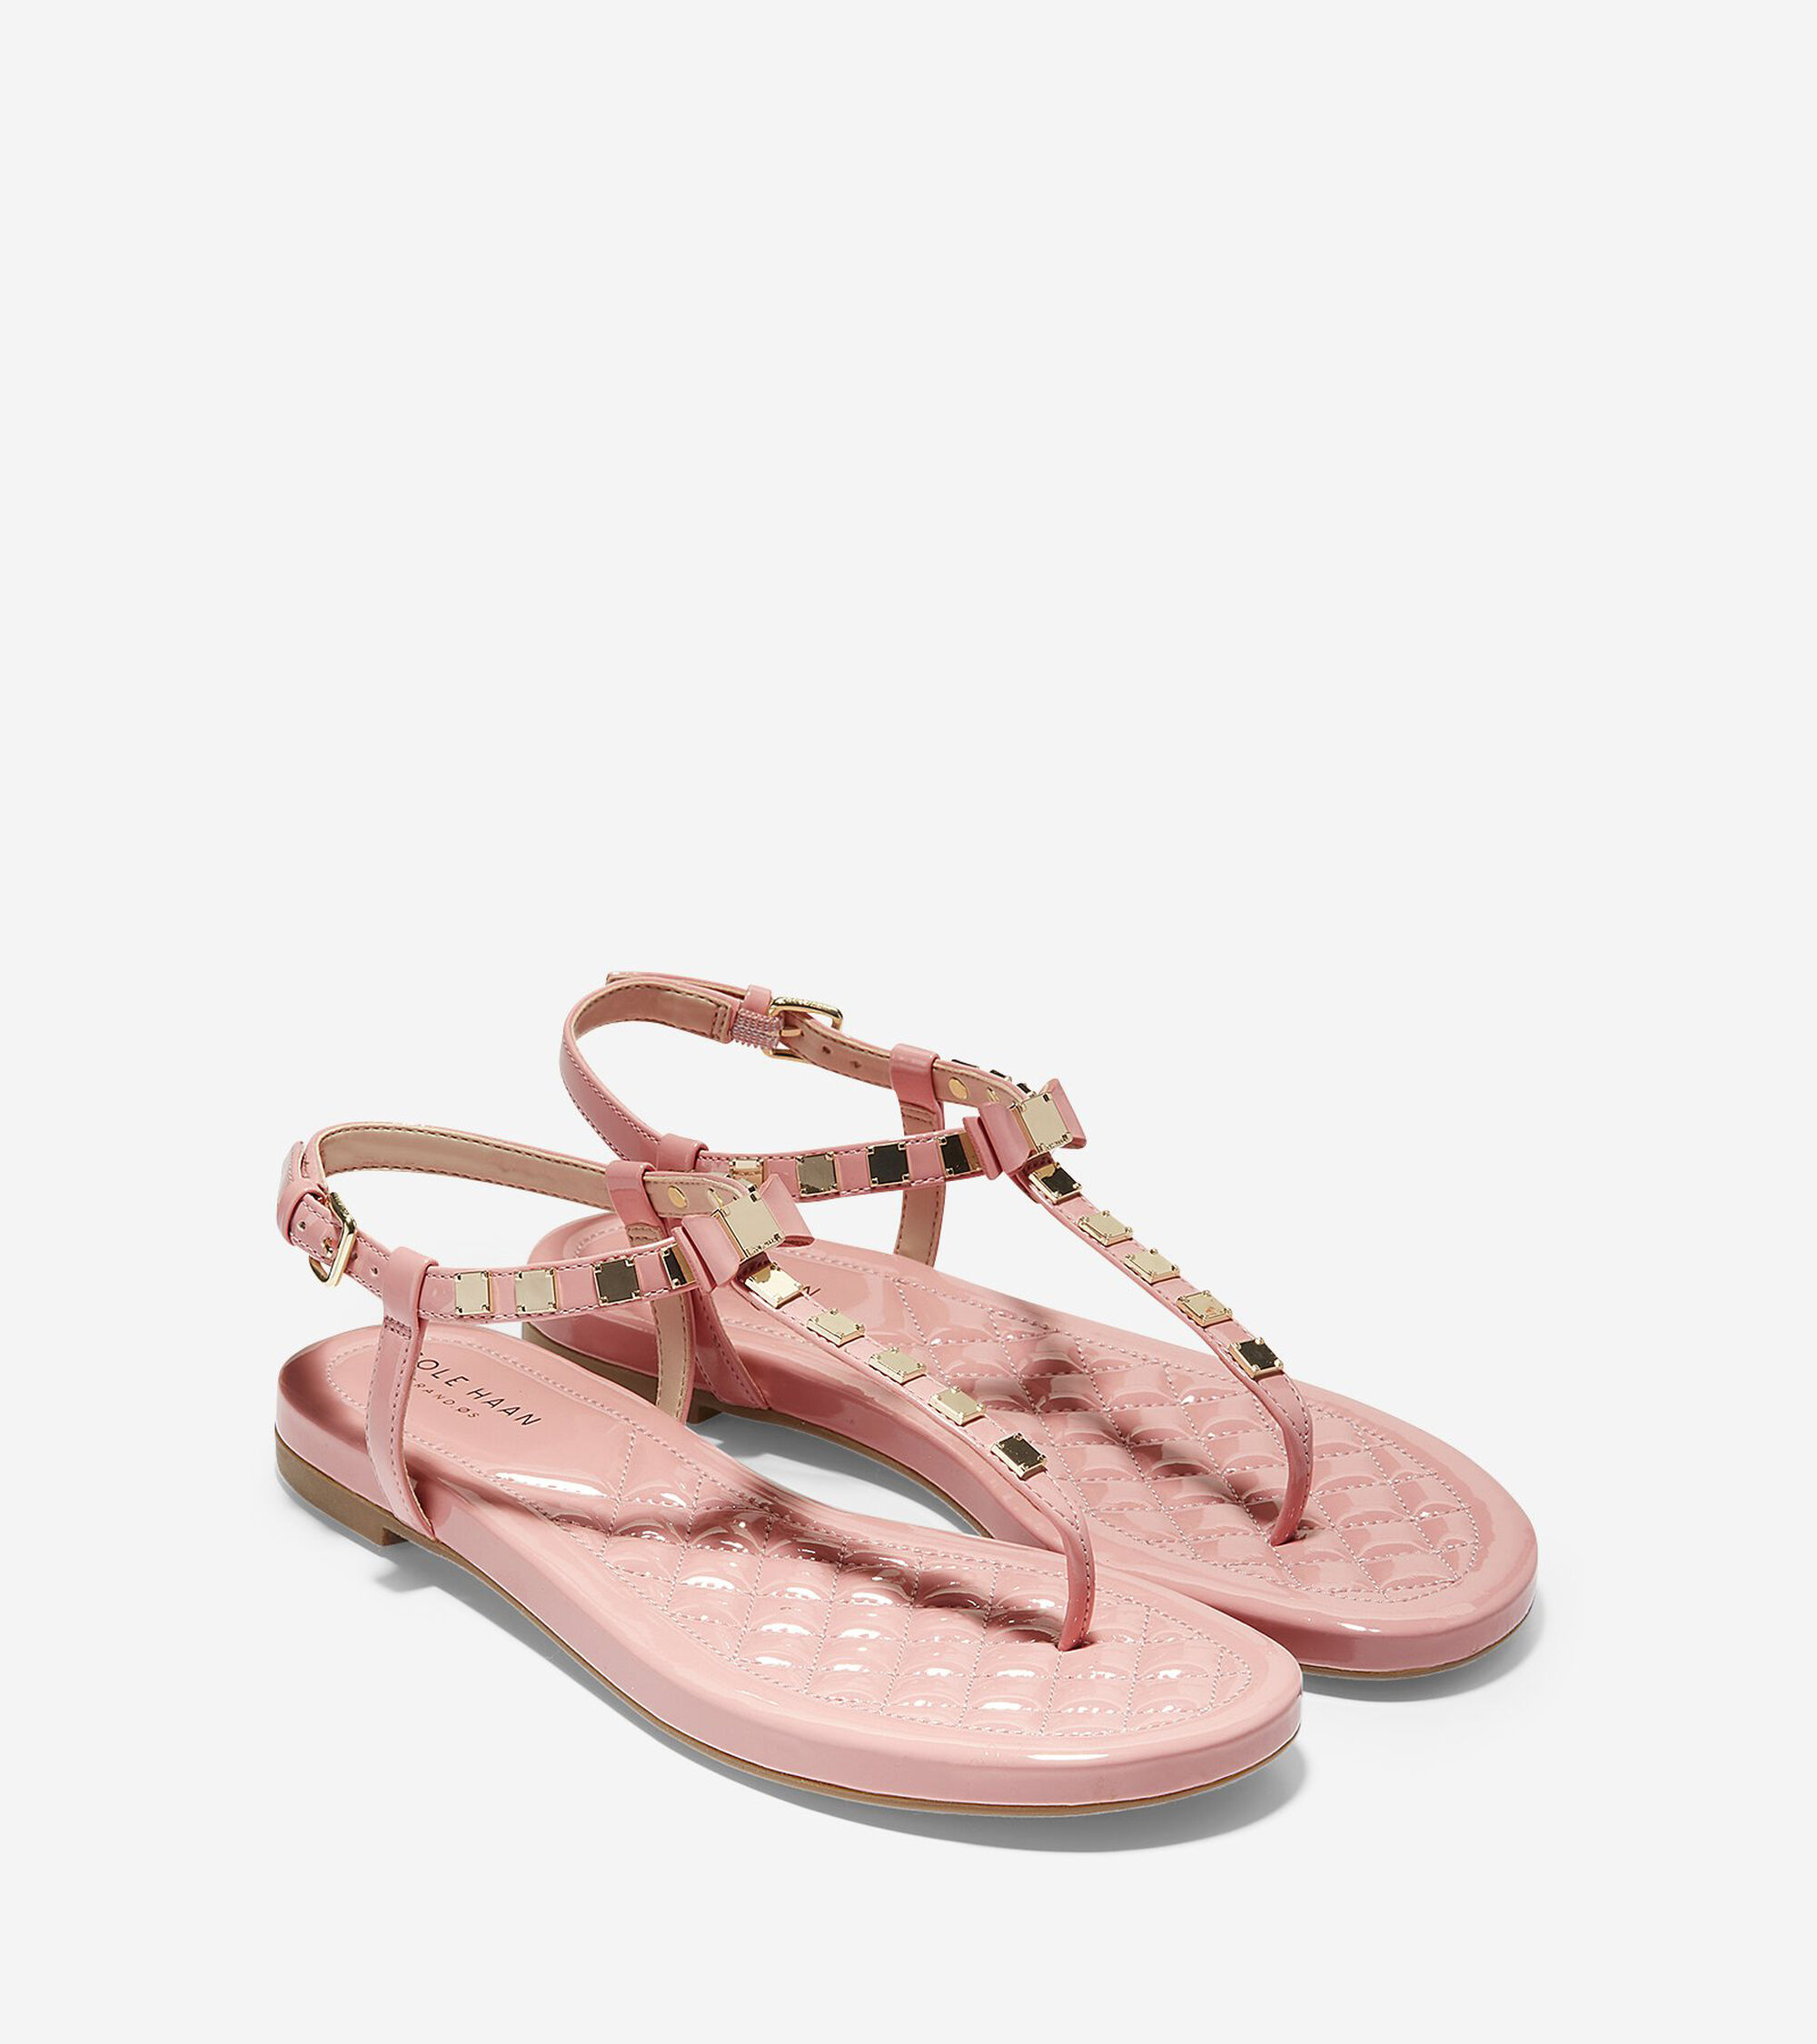 2ebecaace5701 Women s Tali Mini Bow Studded Sandals in Coral Almond